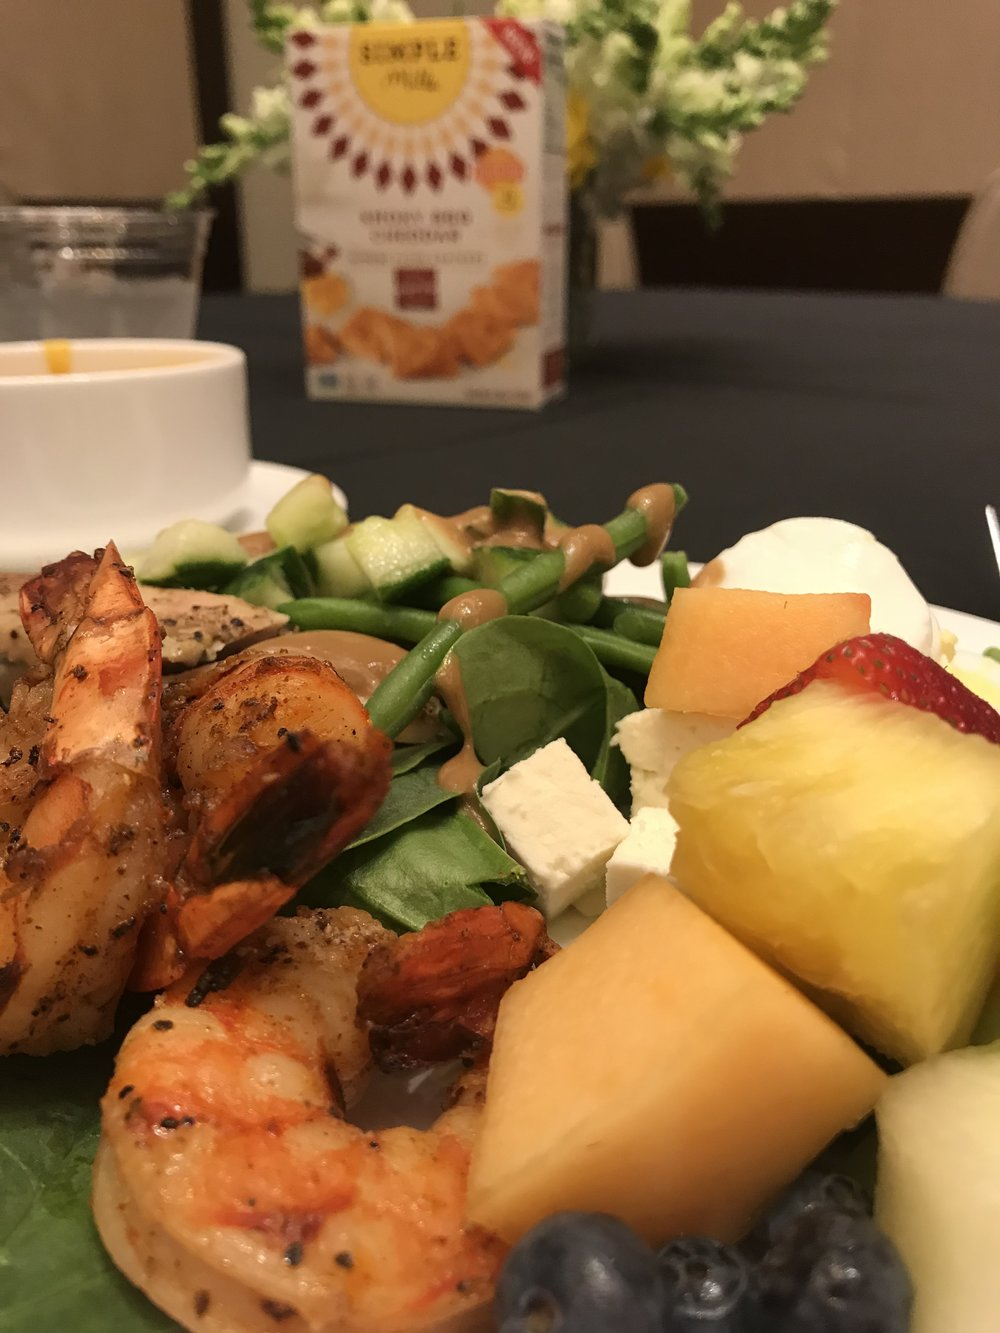 FNCE 2018: A diabetic dietitian does DC